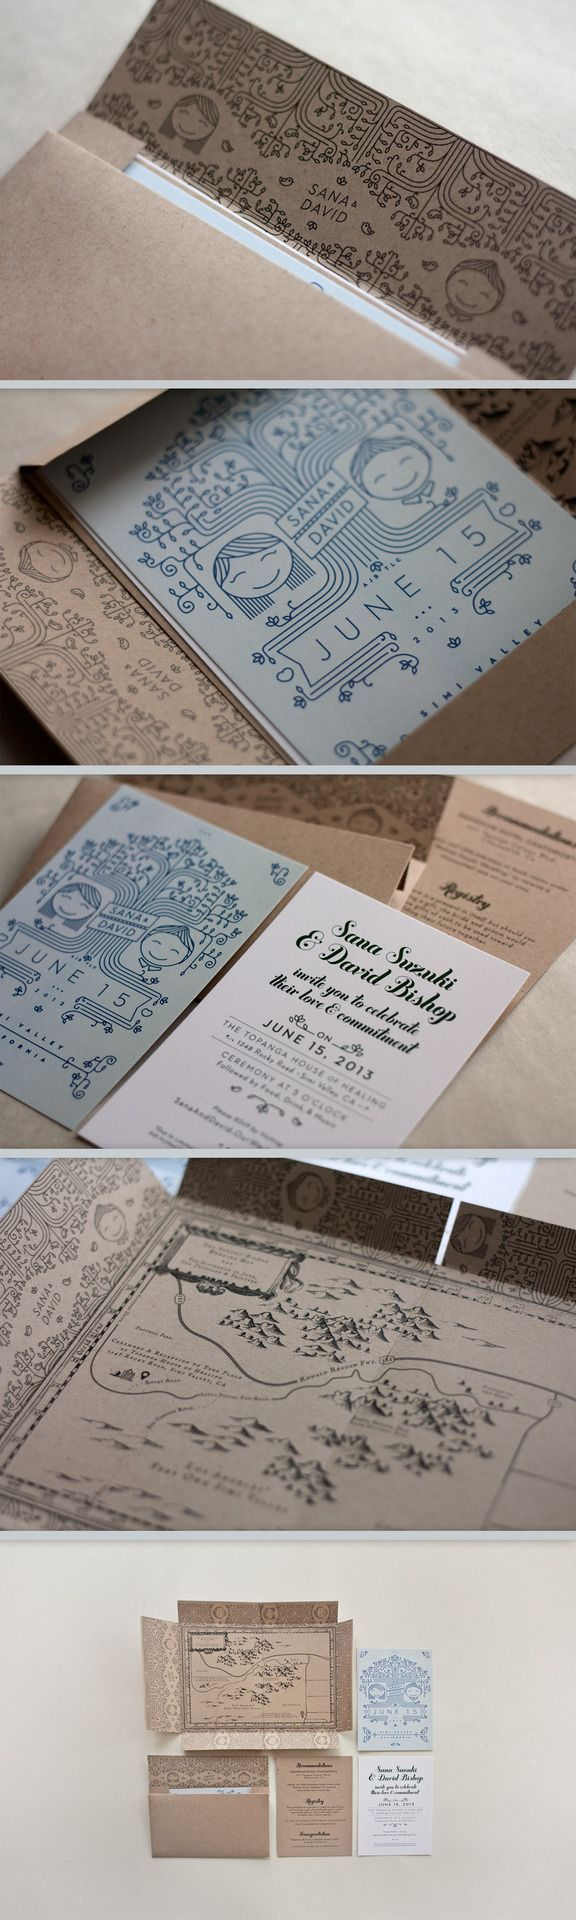 wedding invitation set with map that becomes the envelope. I love how it looks like it's from Lord of the Rings or Narnia!